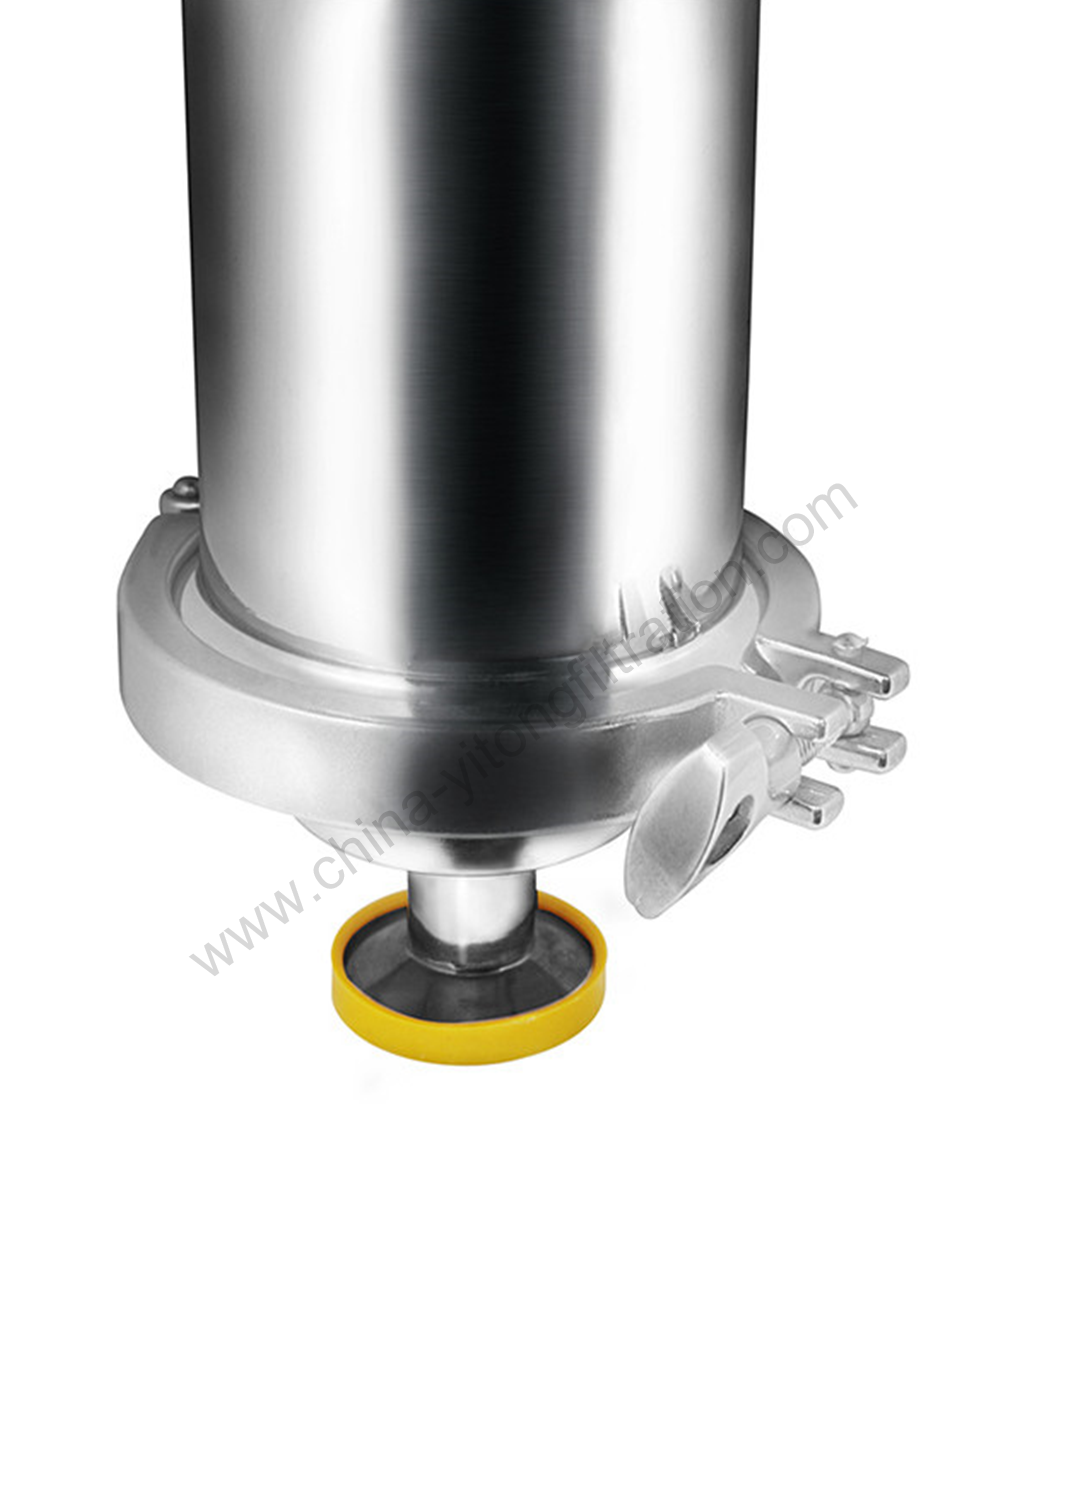 Sanitary Aseptic Air SS GAS Vent Filter Housing